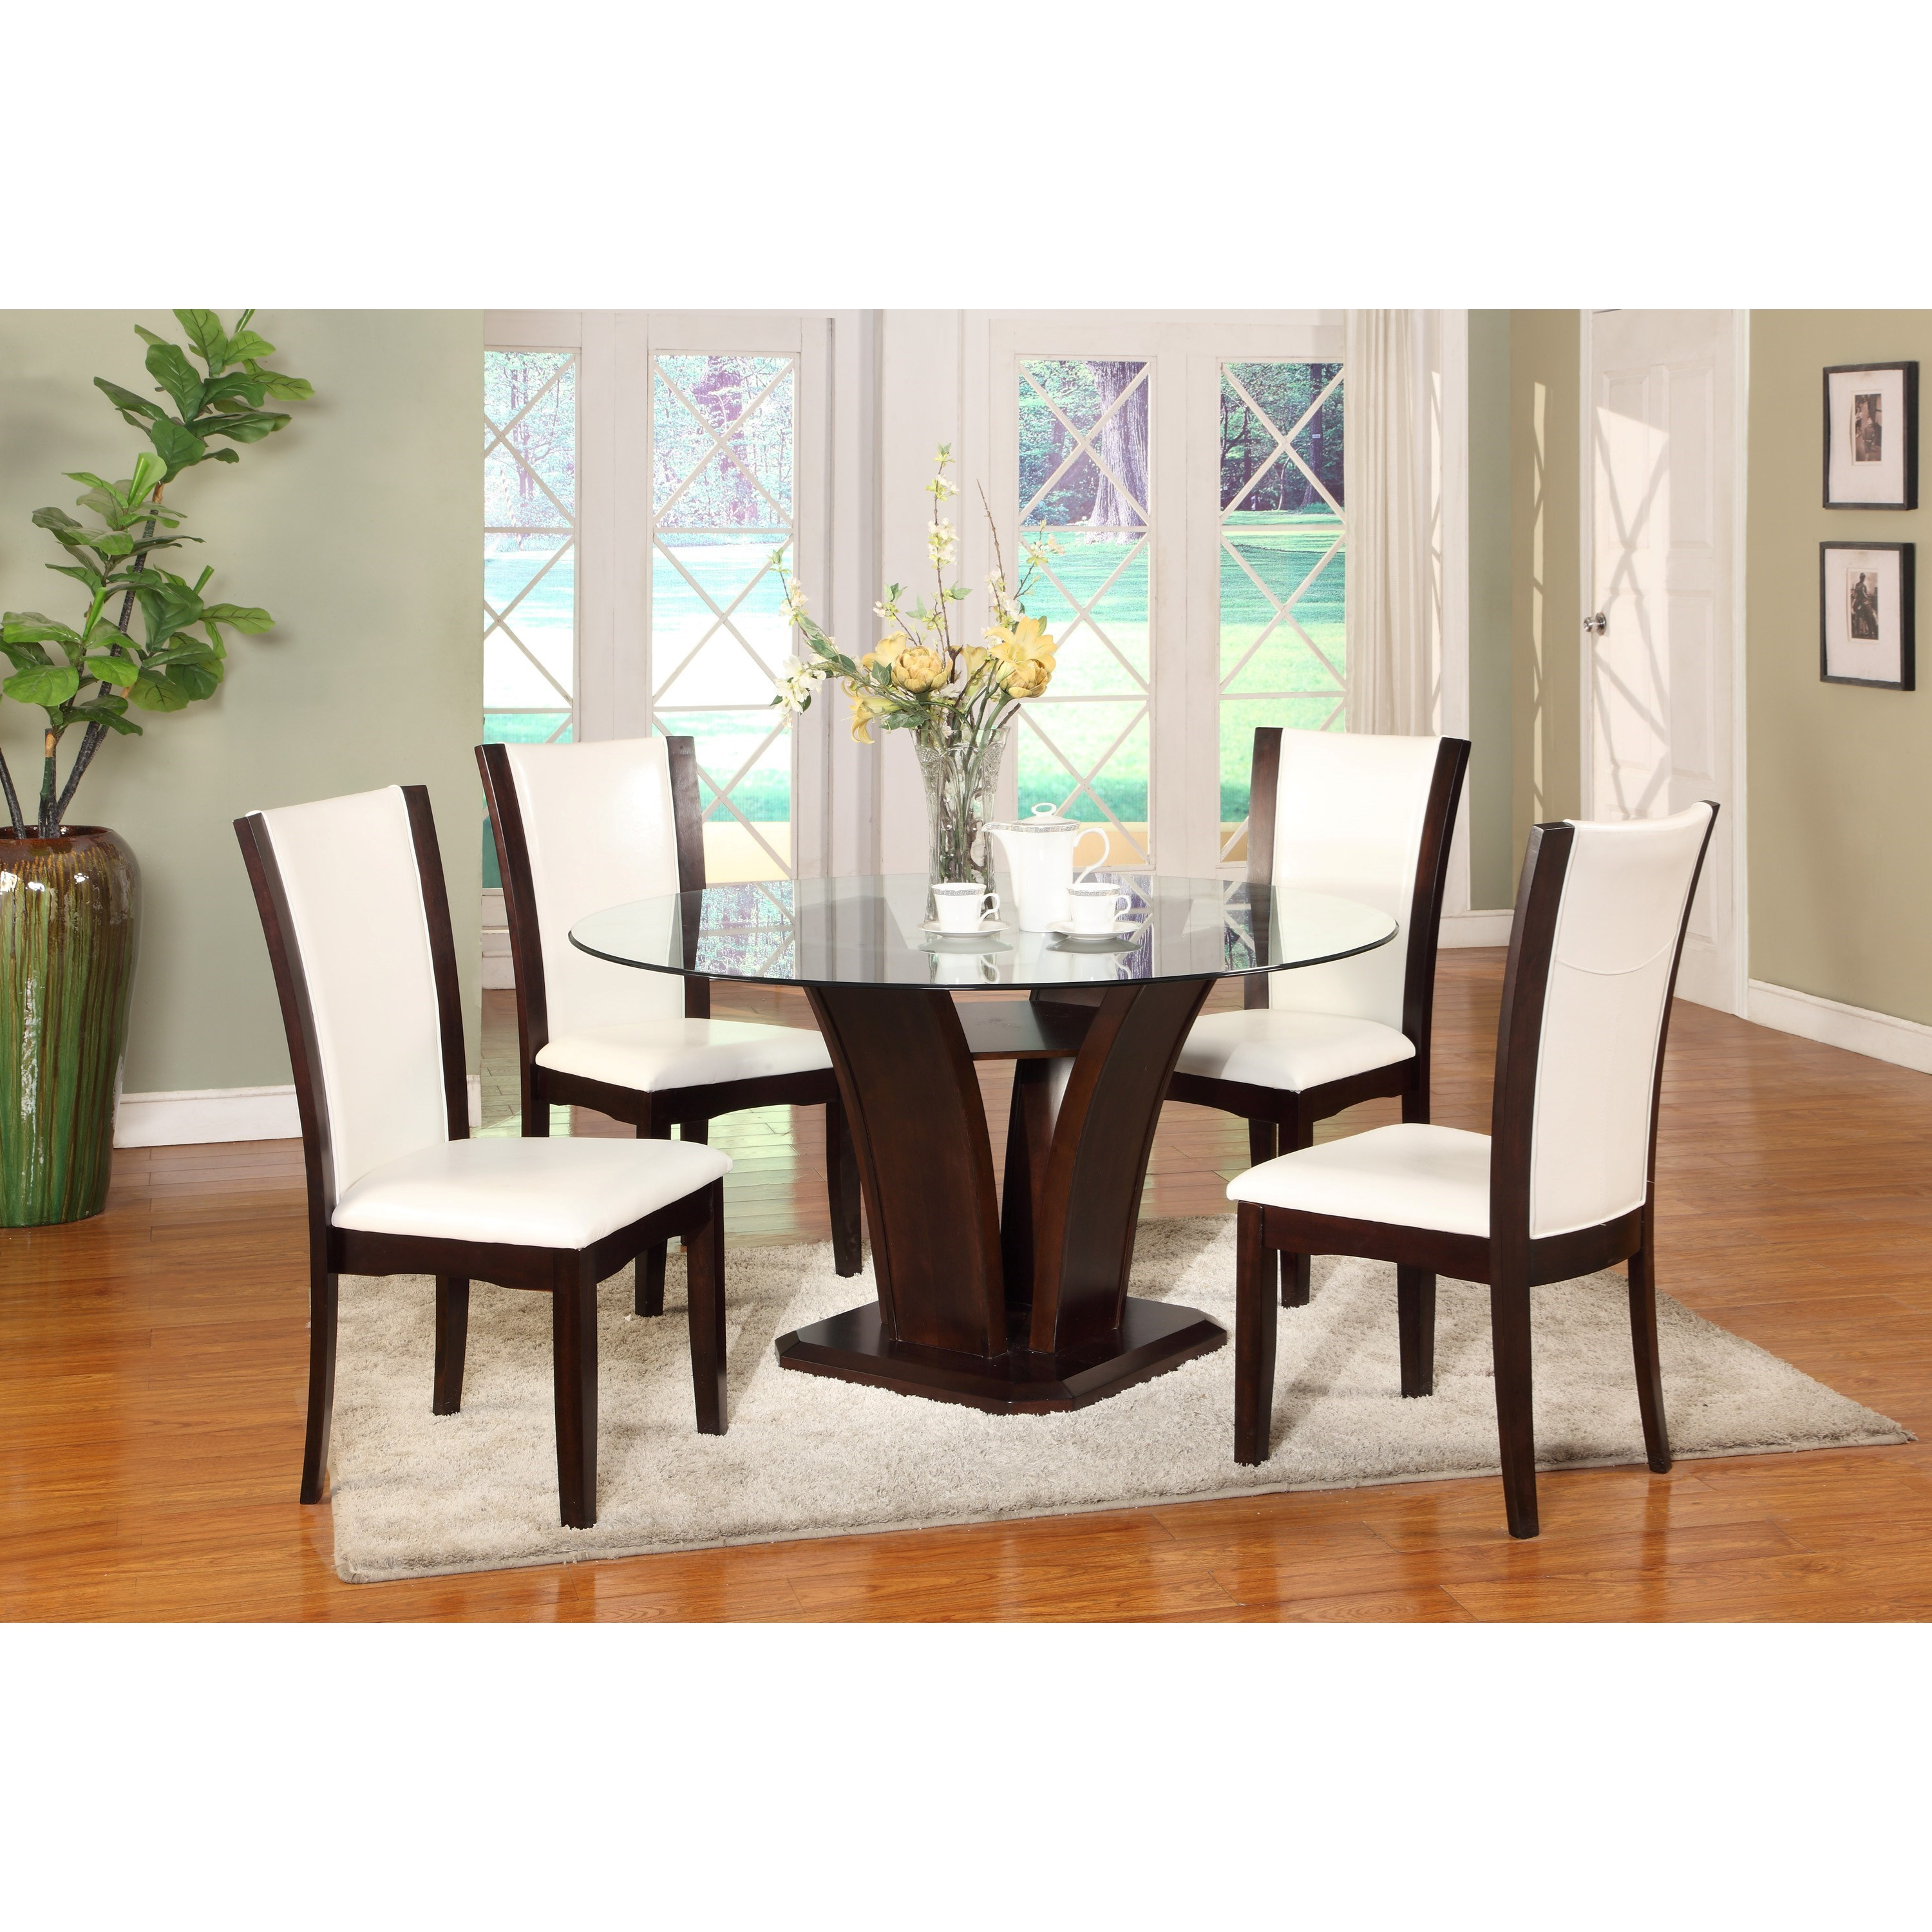 Camelia White 5 Piece Table and Chair Set by Crown Mark at Northeast Factory Direct